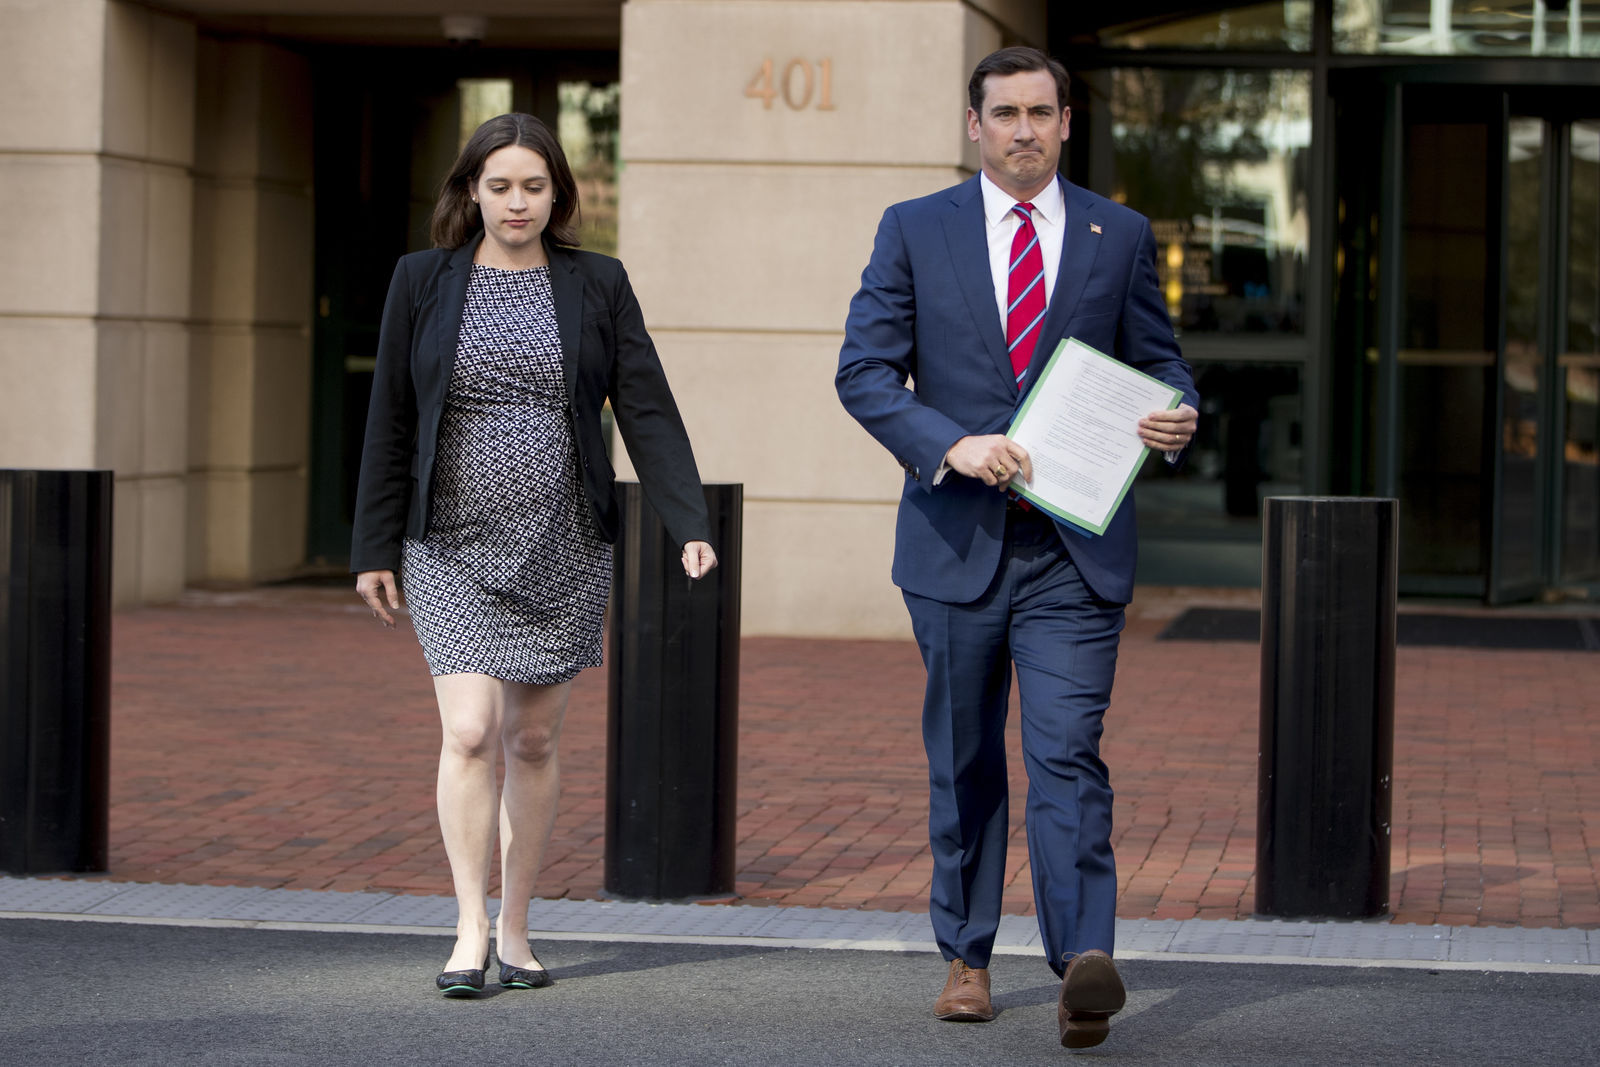 Attorney General for the Eastern District of Virginia G. Zachary Terwilliger, right, accompanied by Assistant United States Attorney Danya Atiyeh, left, arrives to announce the arrest of Henry Kyle Frese, a Defense Intelligence Agency official in Alexandria, Va., Wednesday, Oct. 9, 2019. (AP Photo/Andrew Harnik)